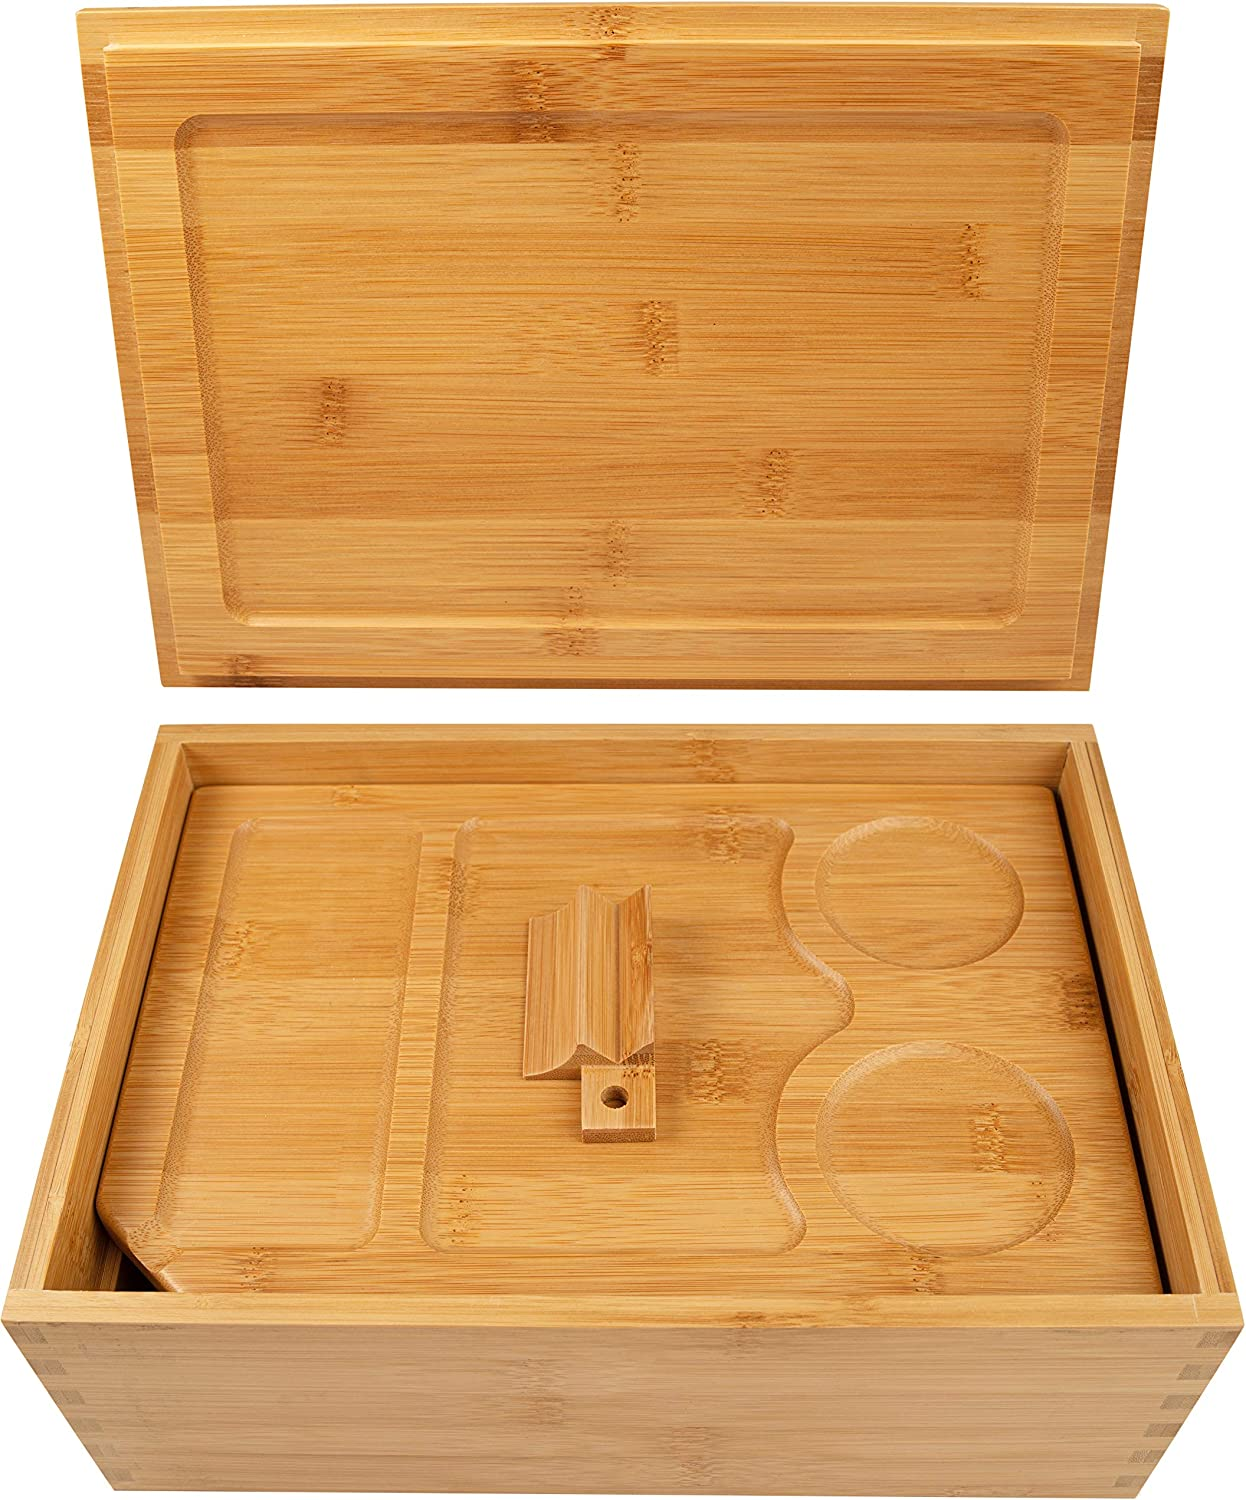 Wooden Stash Box with Rolling Tray Large Stash Box and Rolling Tray Stash Boxes Stash Box with Rolling tray lid Natural